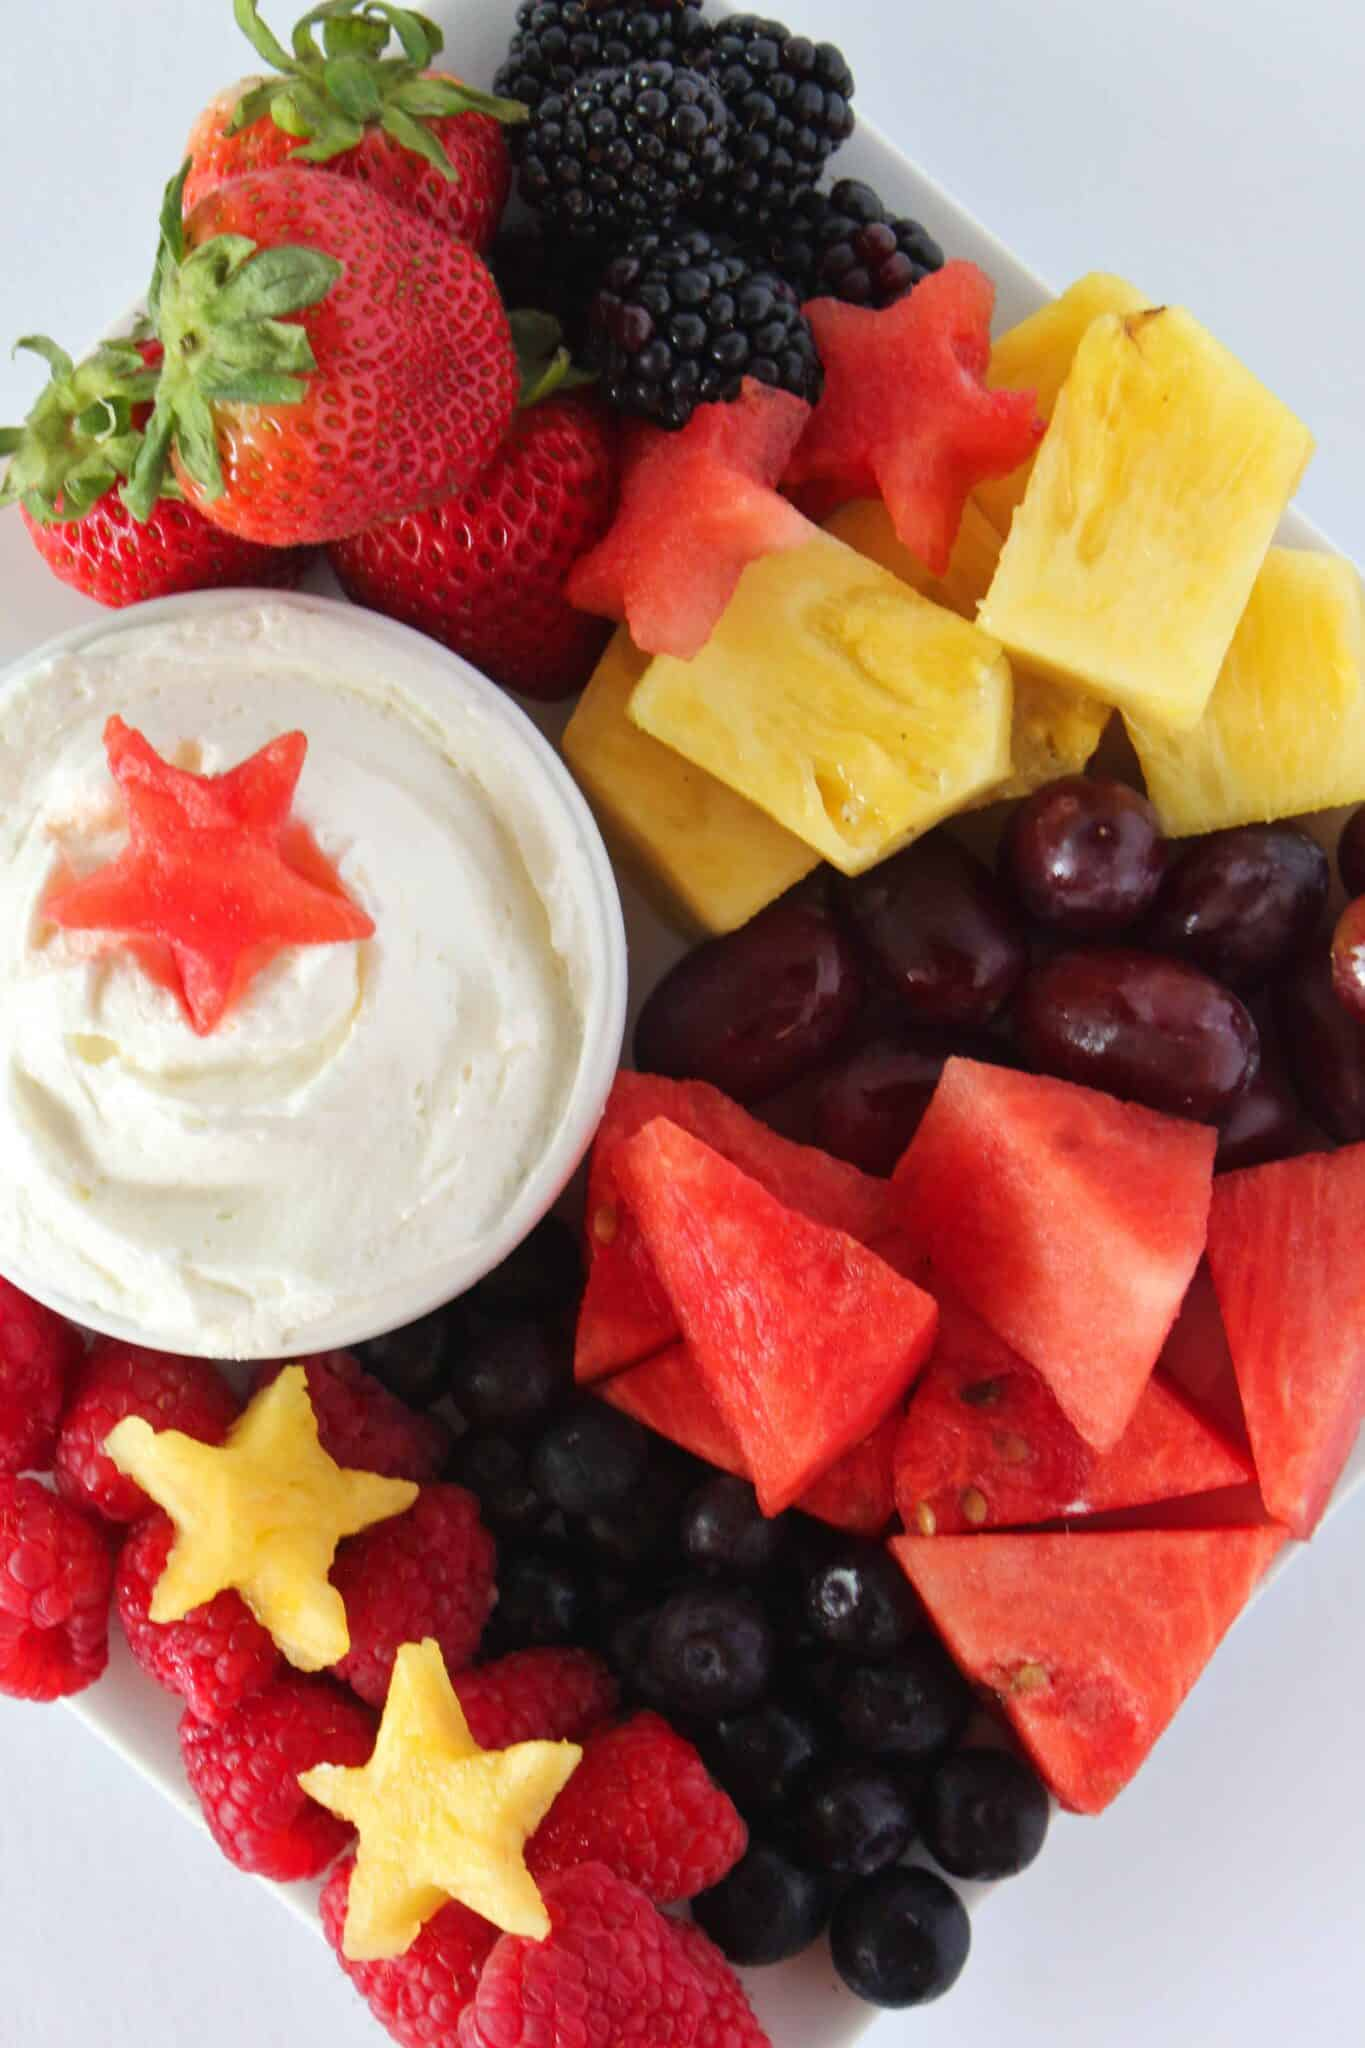 Patriotic Desserts: a Festive 4th of July Fruit Tray featured by top US dessert blogger, Practically Homemade